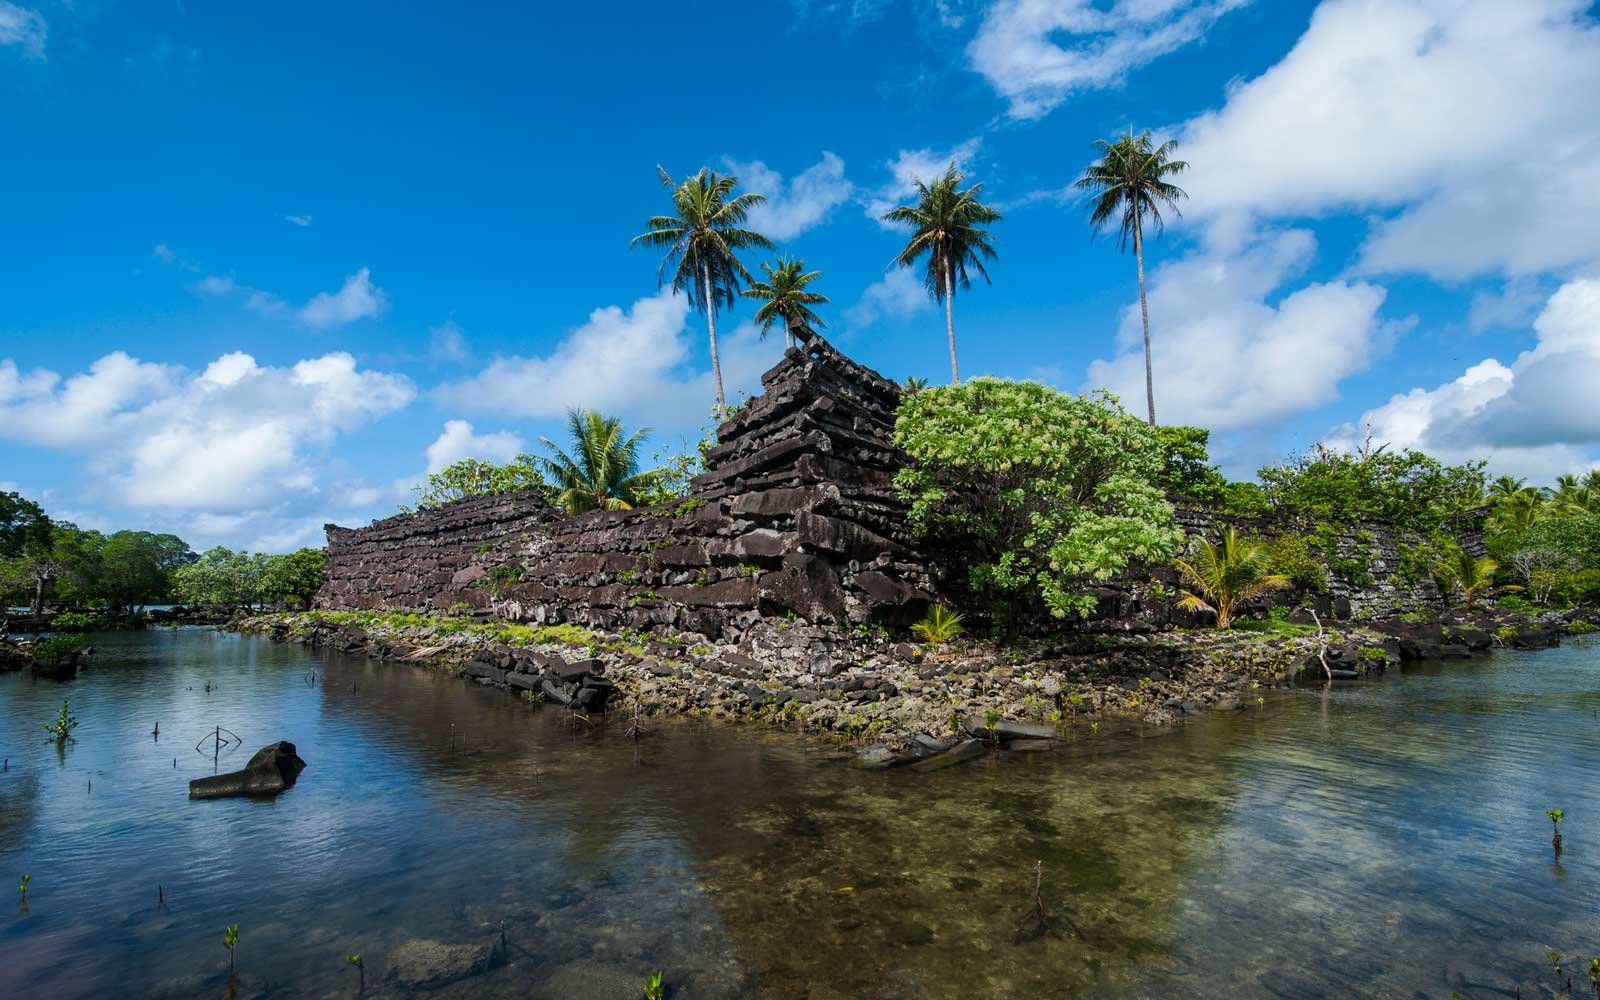 Nan Madol ruins in Pohnpei, Micronesia